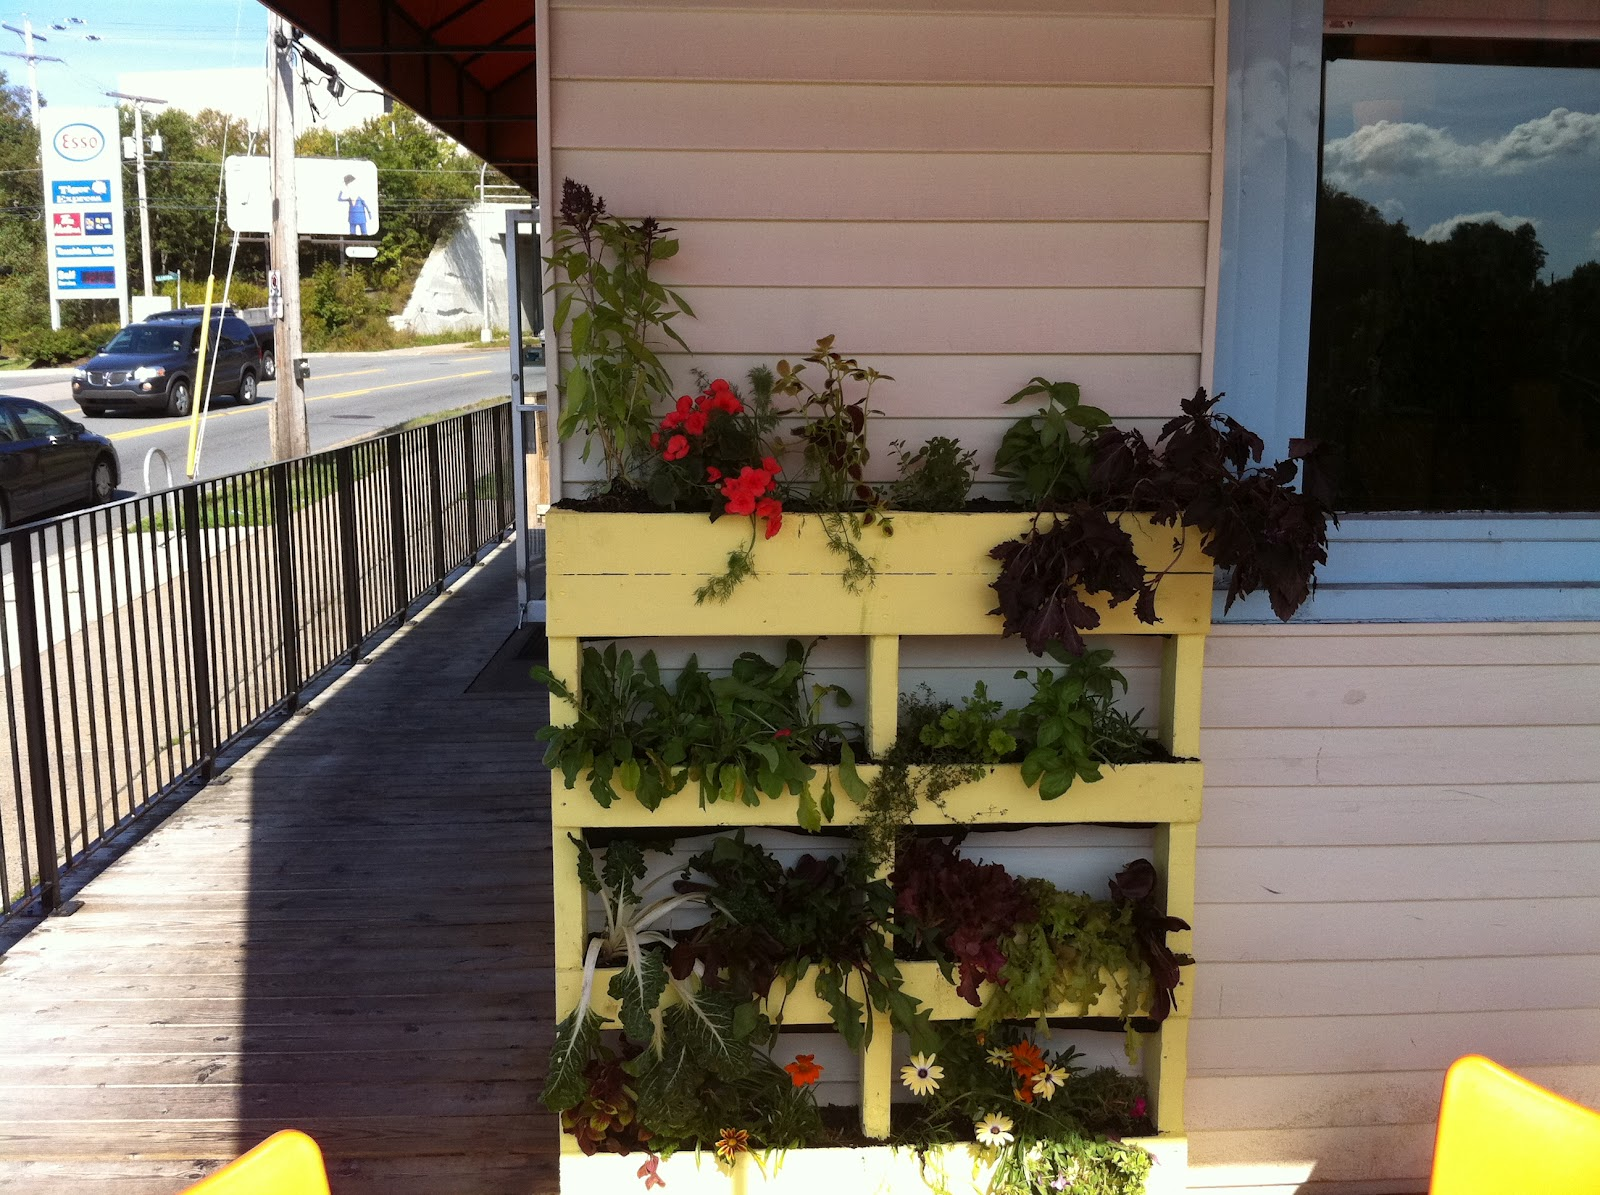 Niki jabbour the year round veggie gardener april 2012 for Jardin vertical casero